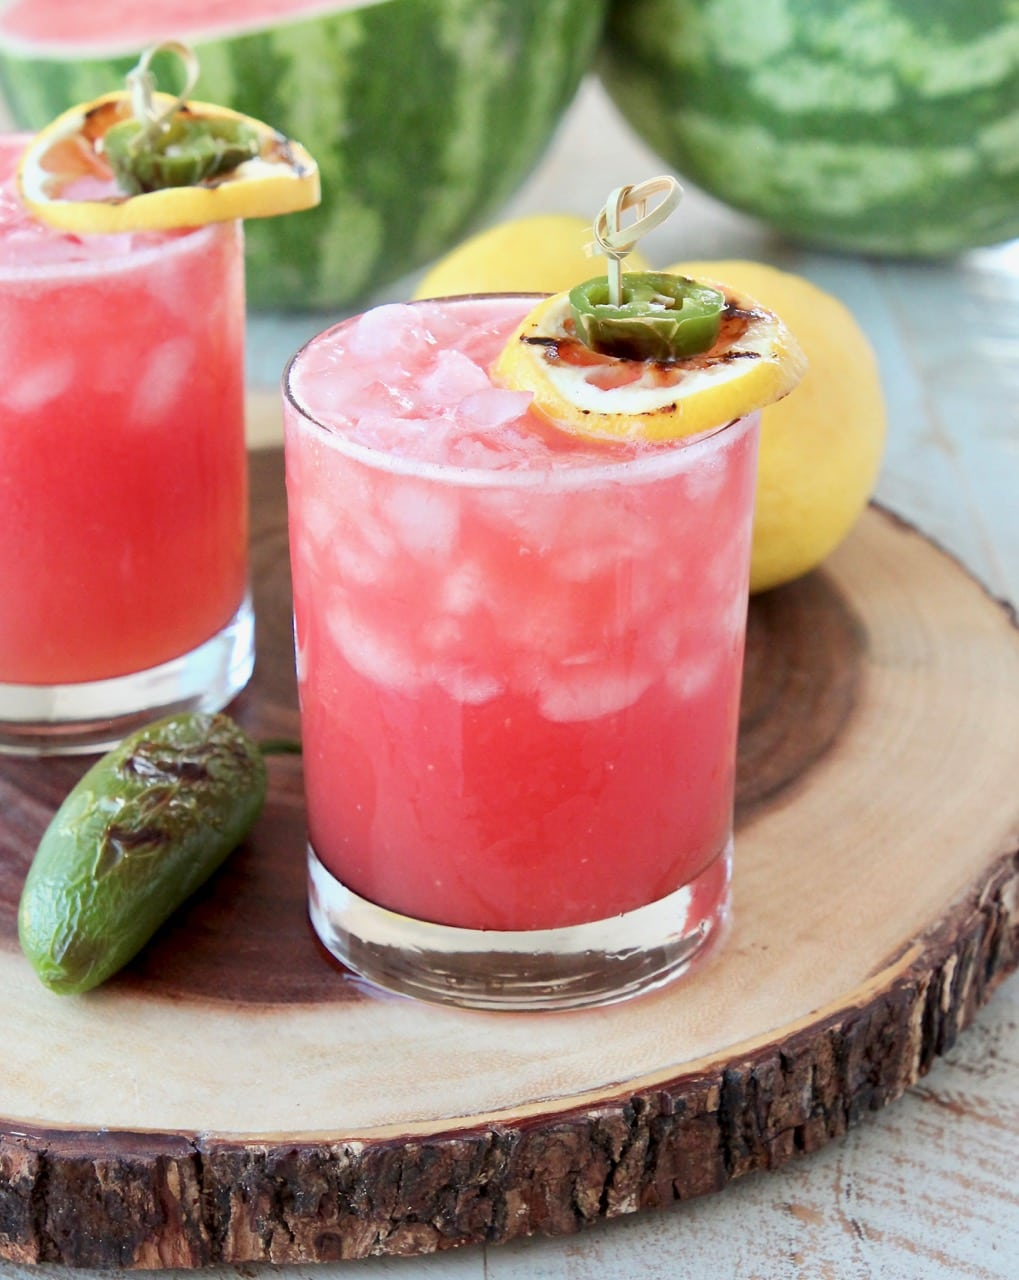 Watermelon Margaritas on the rocks with Grilled Jalapenos and Lemons